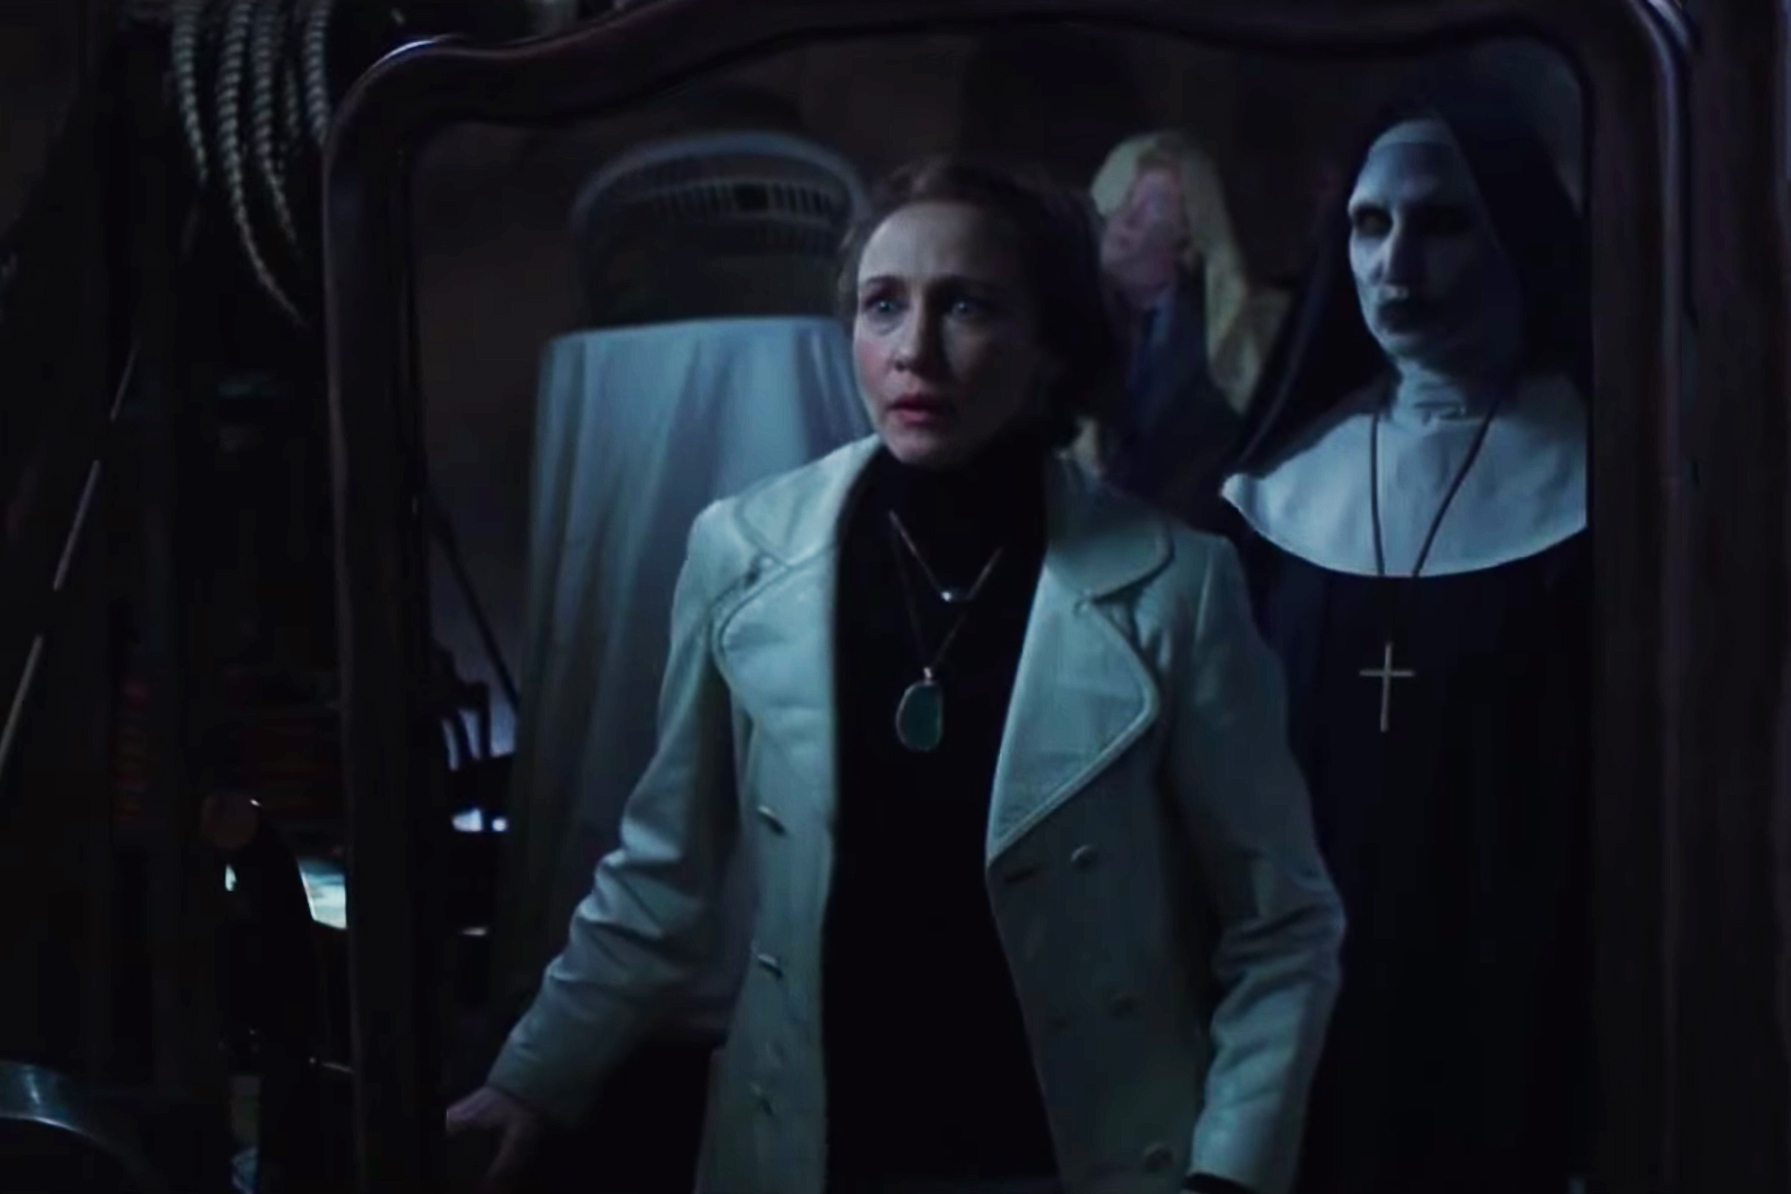 the-conjuring-trailer-000.jpg